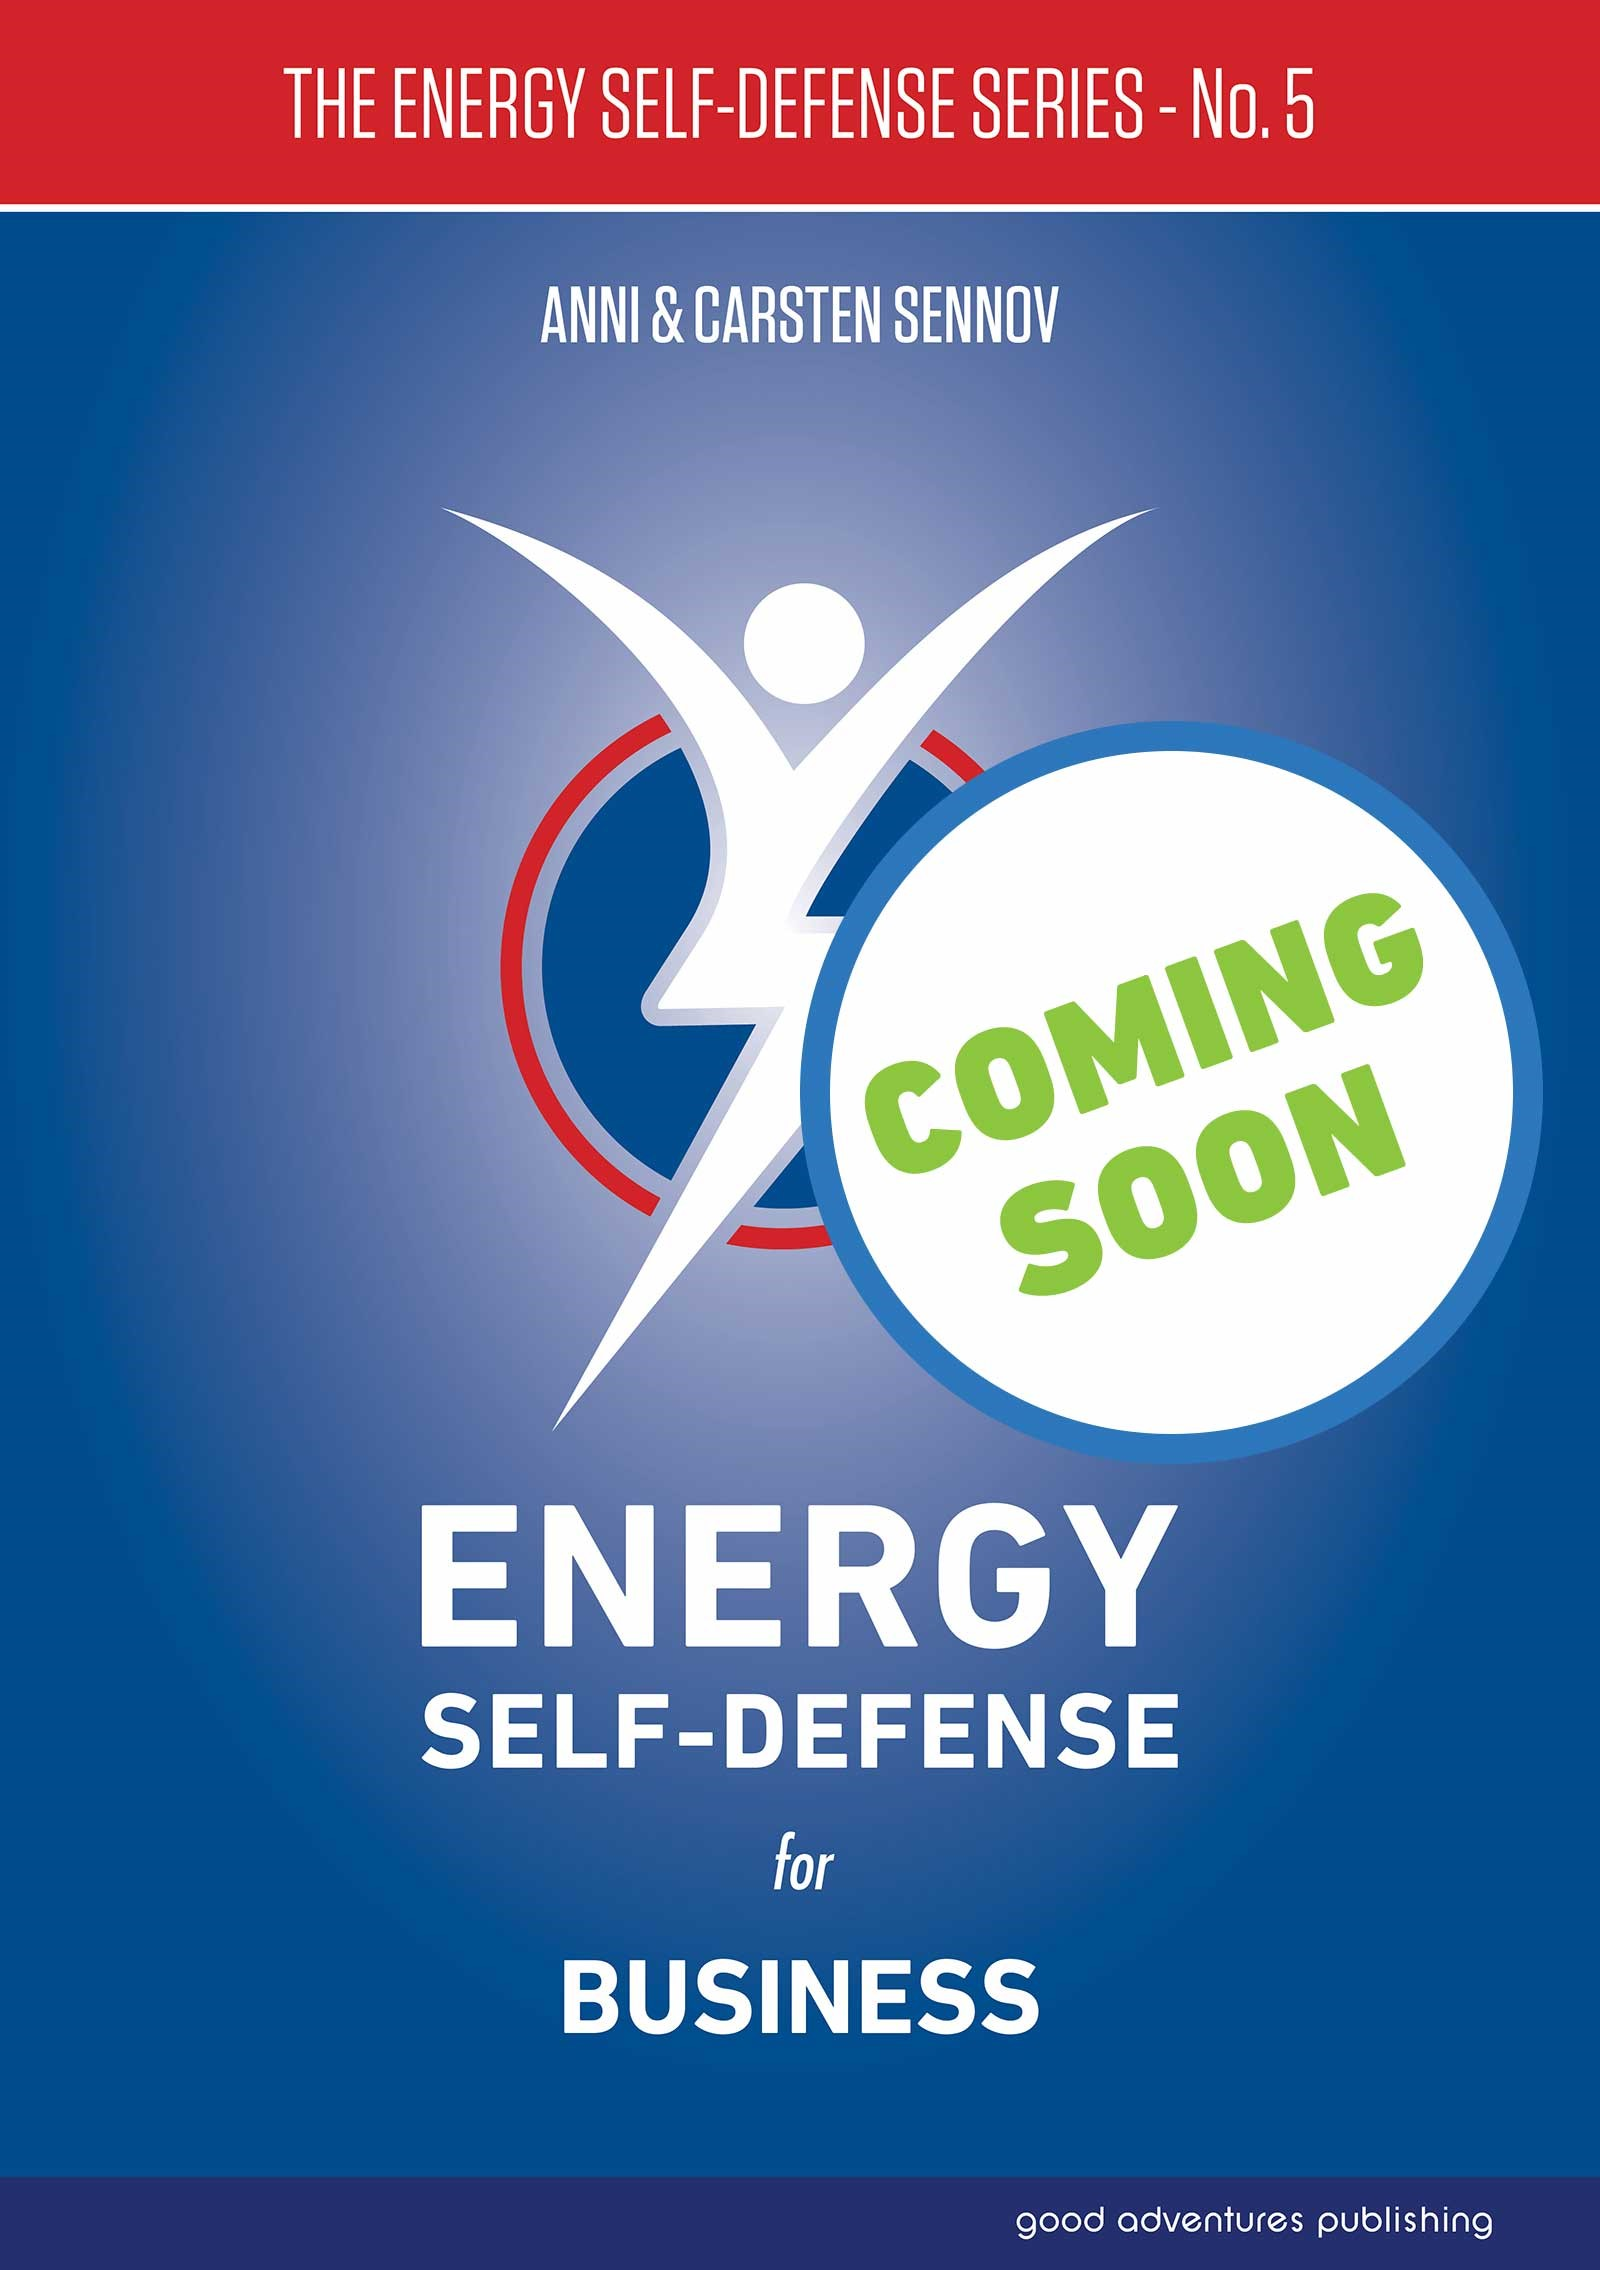 No 5_Energy Self-Defense for Business_COMING SOON